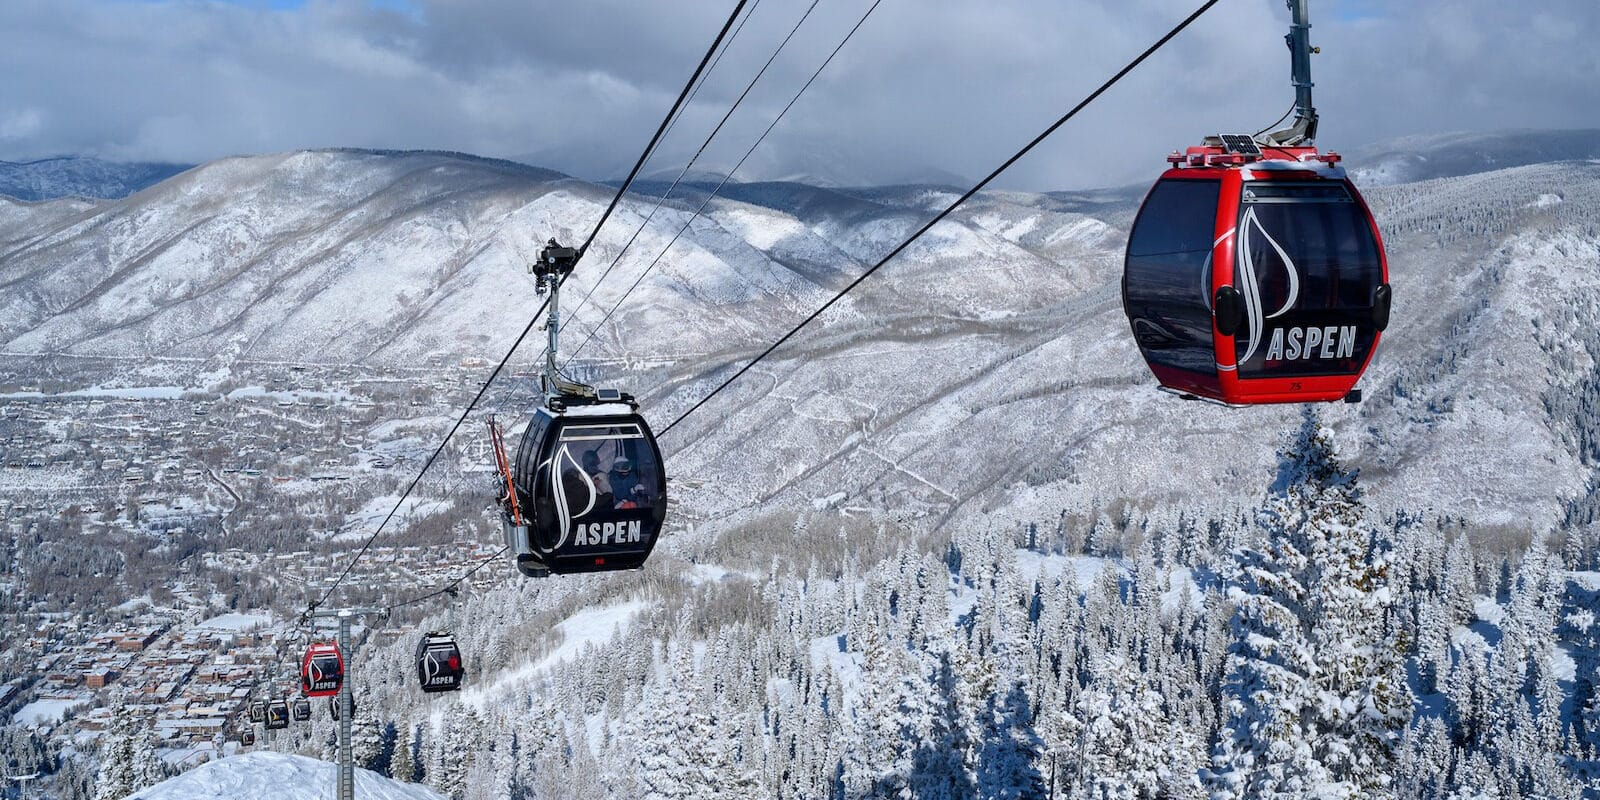 Image of the Silver Queen Gondola in Aspen during winter